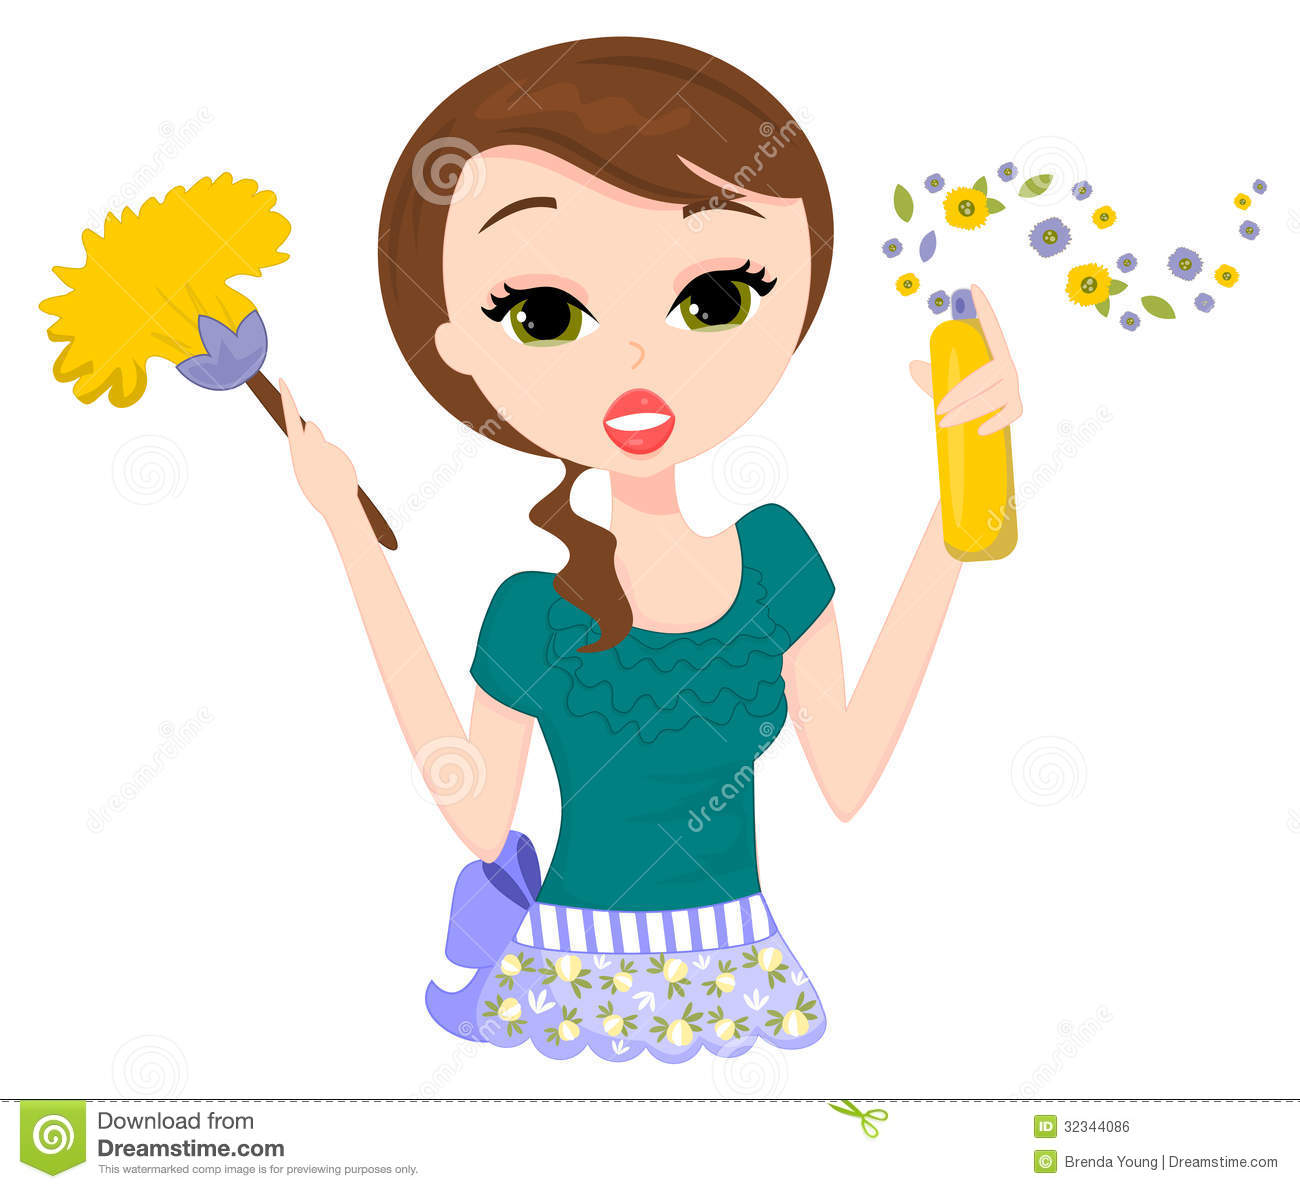 Illustration of a plain Jane lady cleaning and spray dusting.